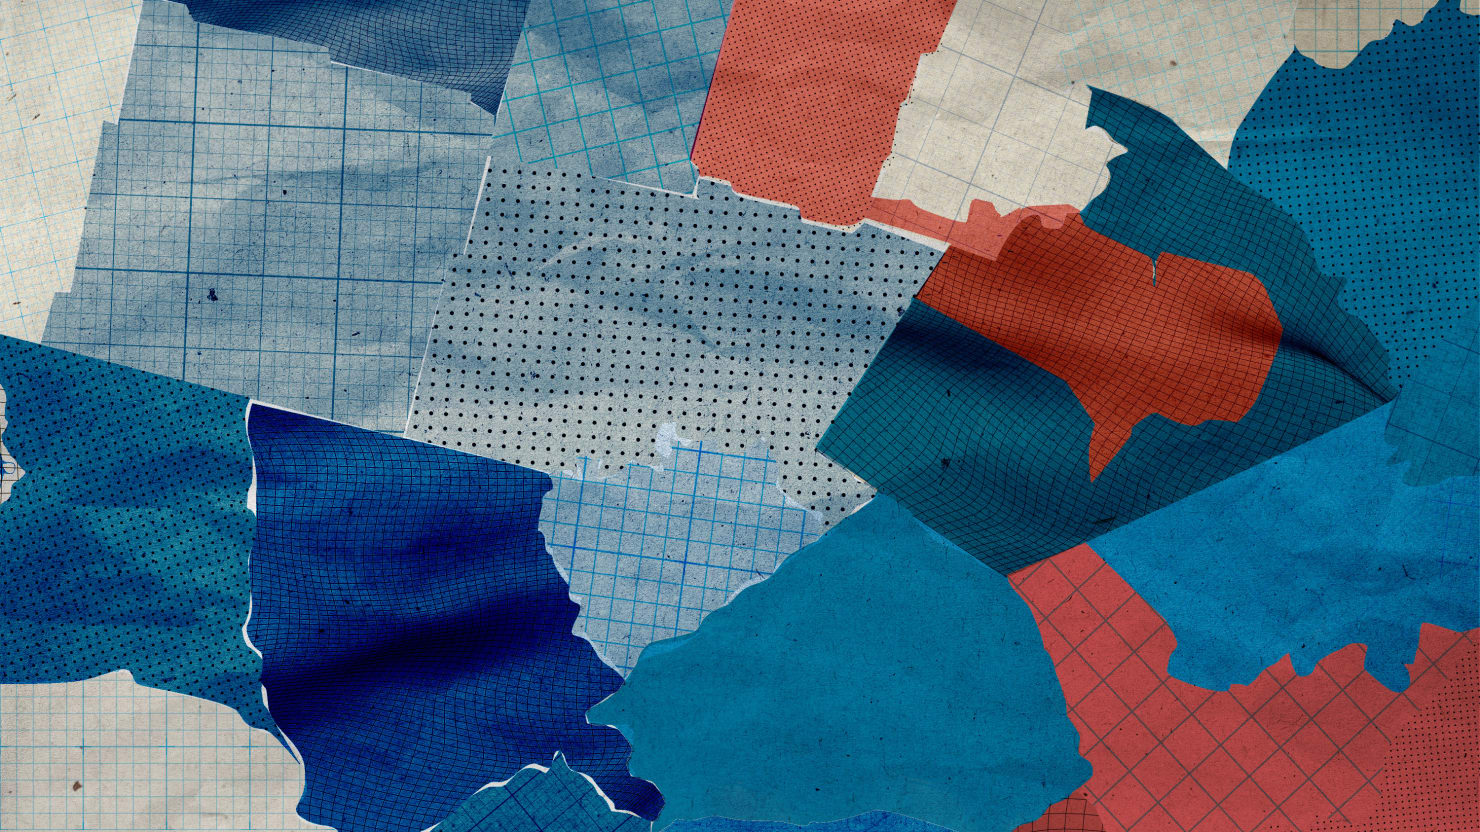 Dems Torn Over Whether to Now Go Nuts Gerrymandering Their Own Maps